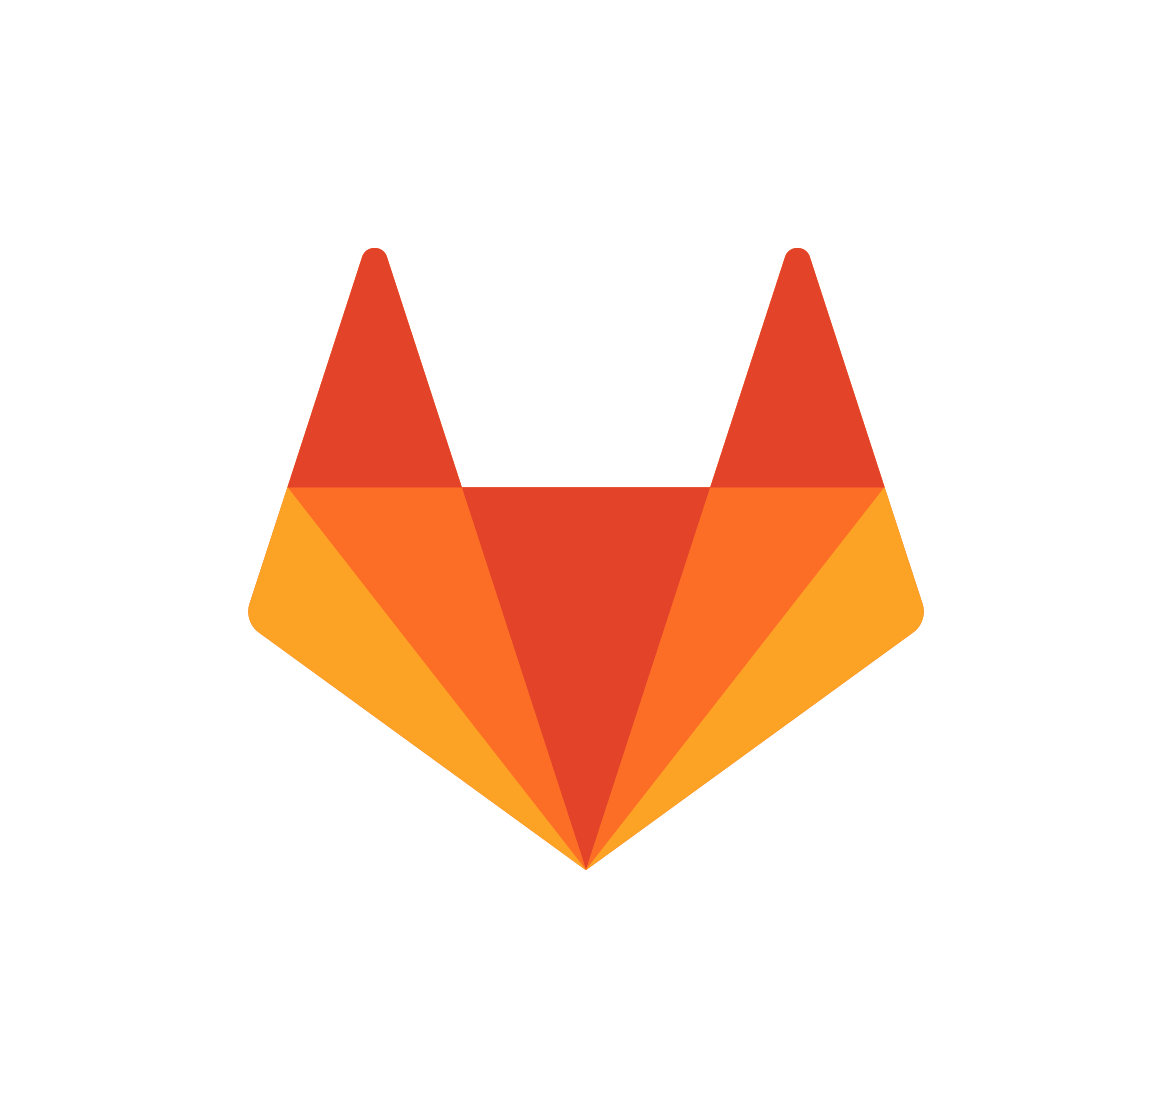 image from GitLab